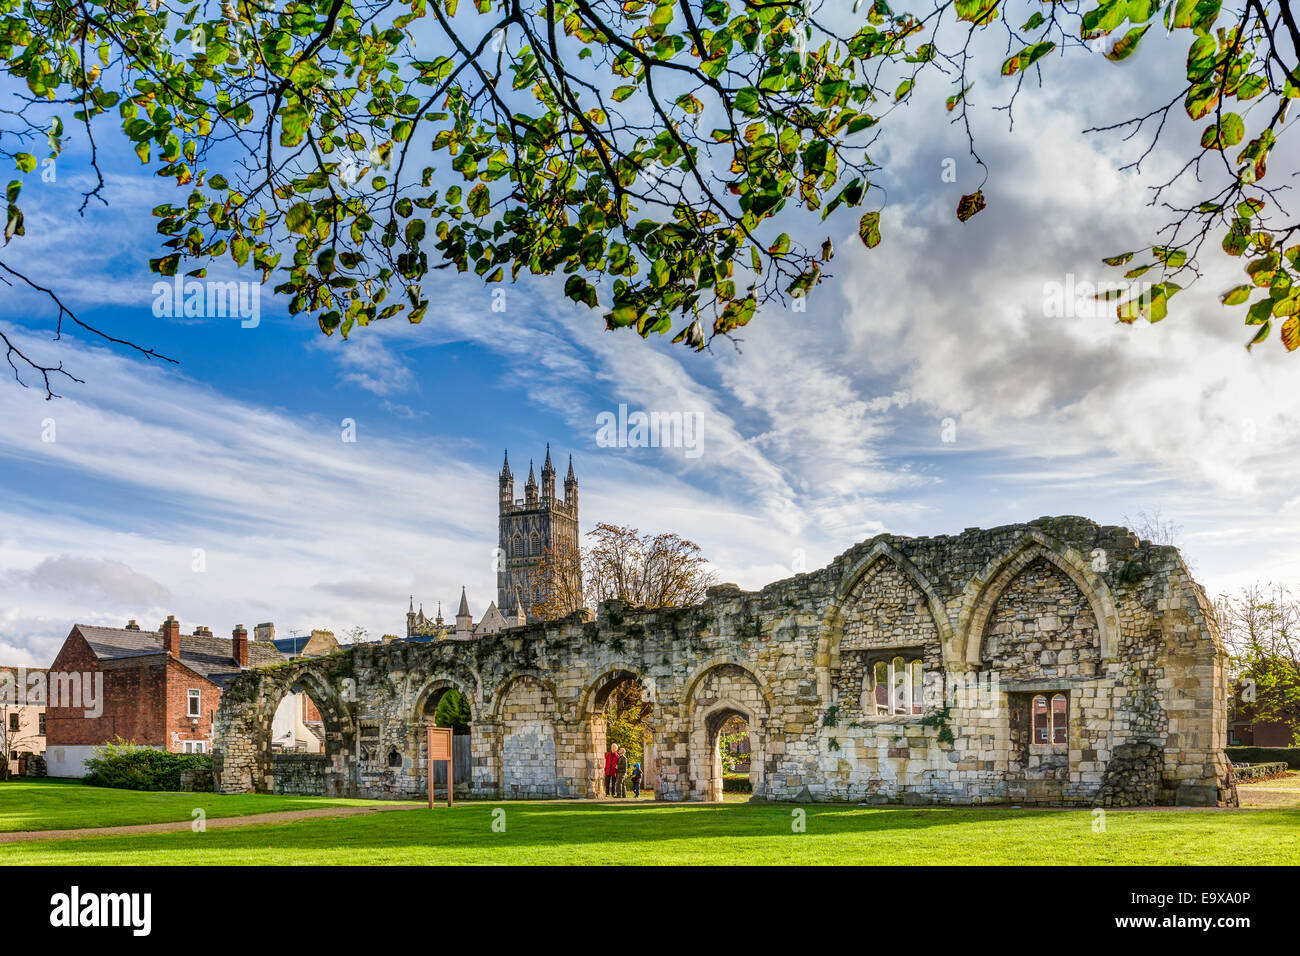 Gloucester cathedral rises above the ruins of St Oswald's priory, bathed in autumn sunshine, in the city of - Stock Image